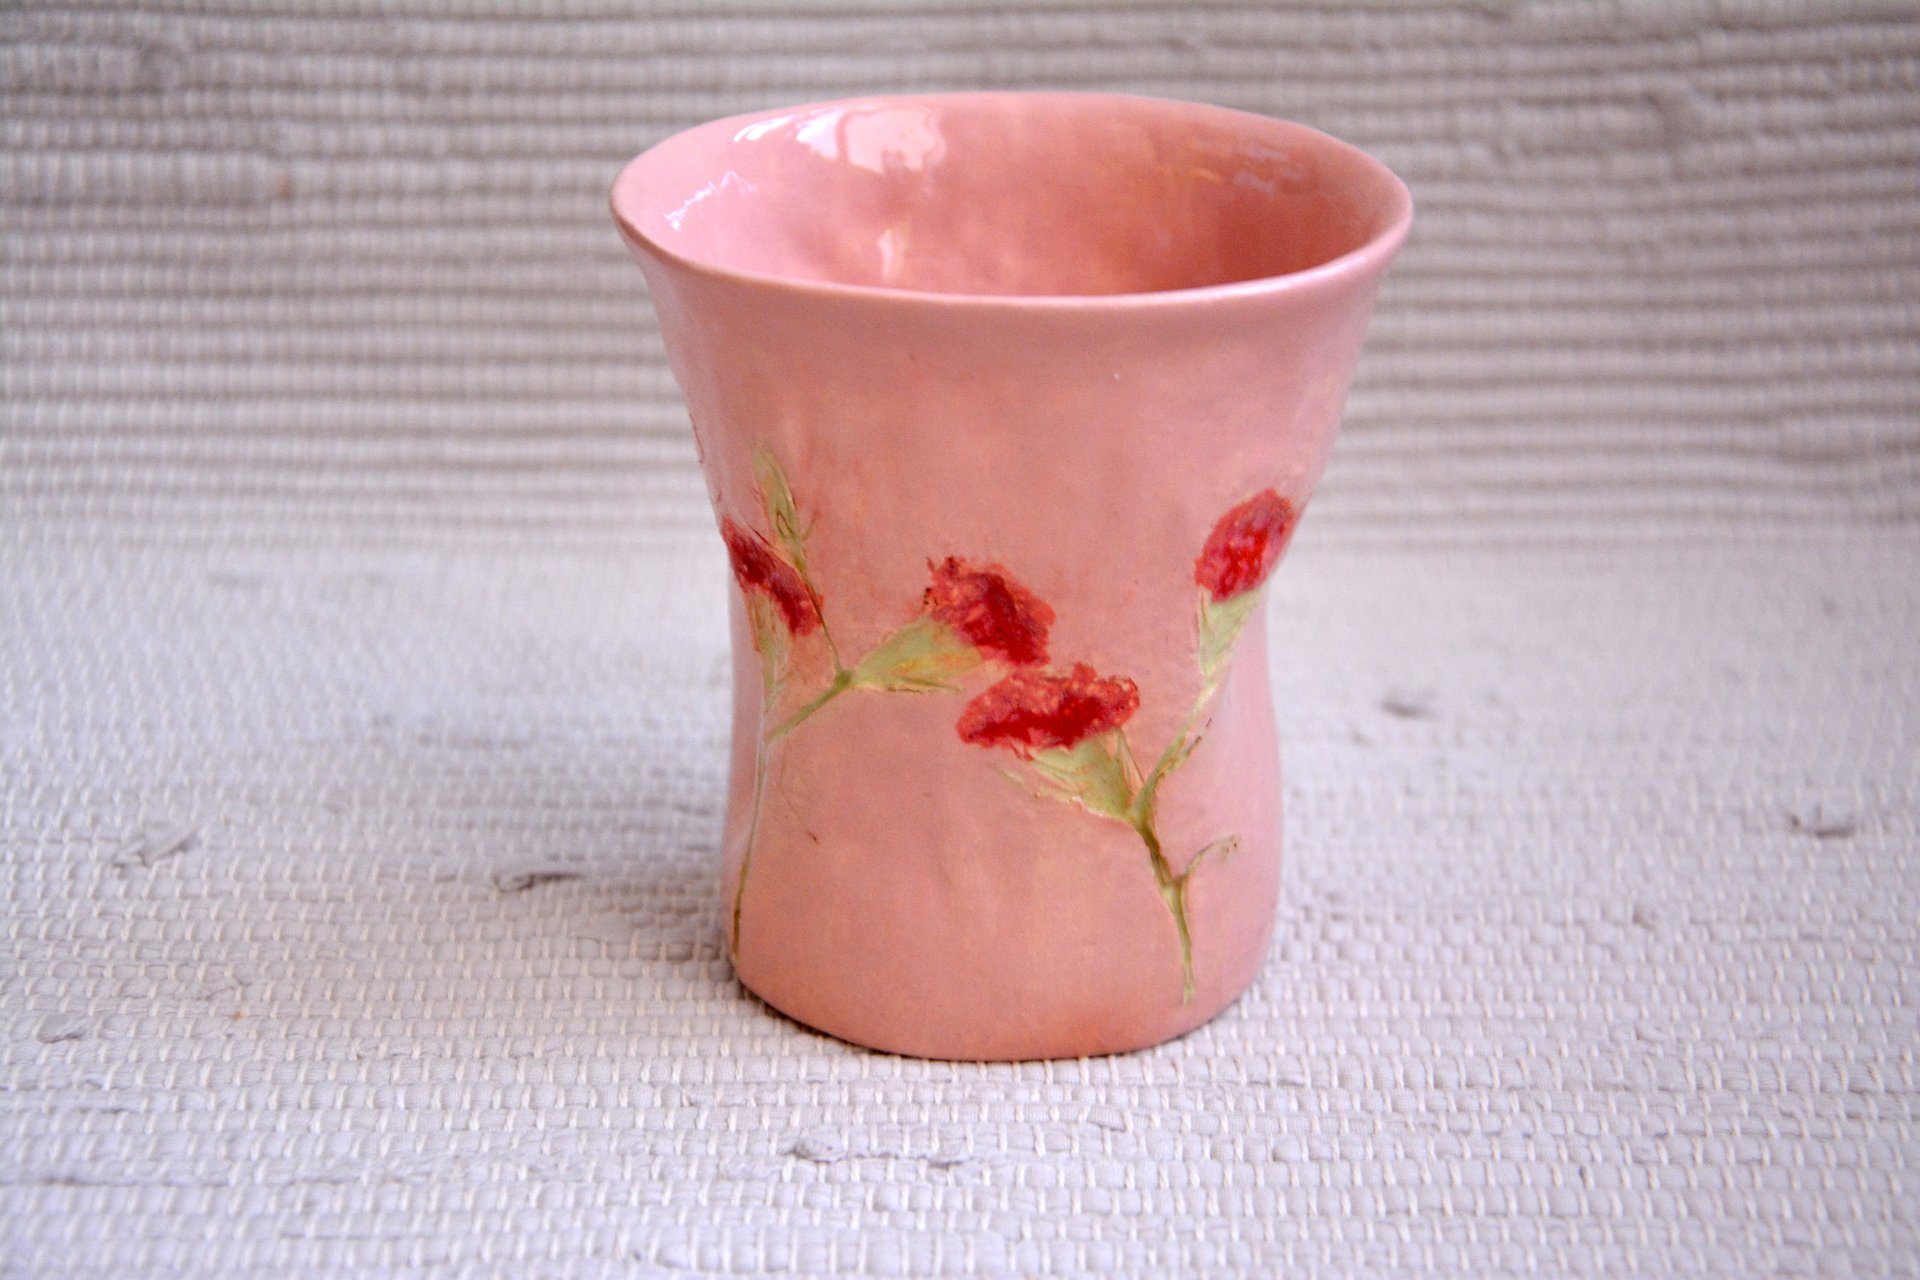 Pink glass The Carnation - Cups, glasses, mugs, height - 11 cm, diameter at the top - 10 cm, diameter on the bottom - 7 cm., photo 1 of 3.